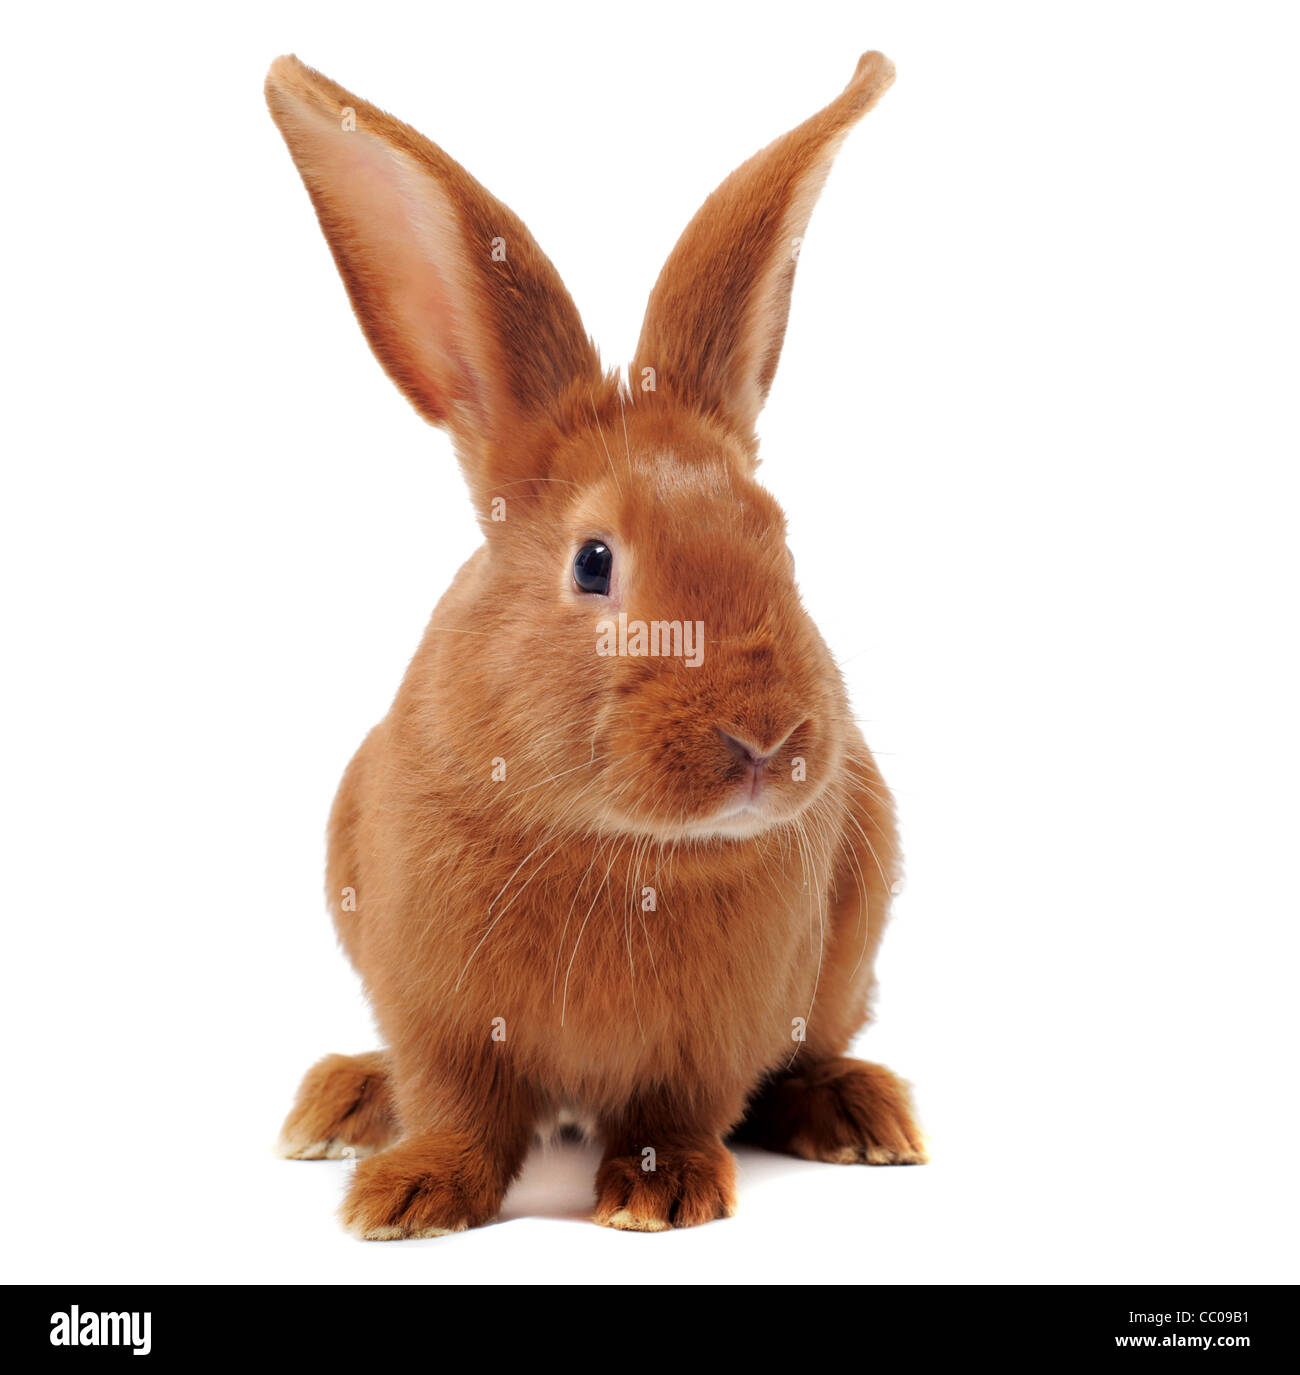 Jeune lapin fauve de Bourgogne in front of white background Photo Stock